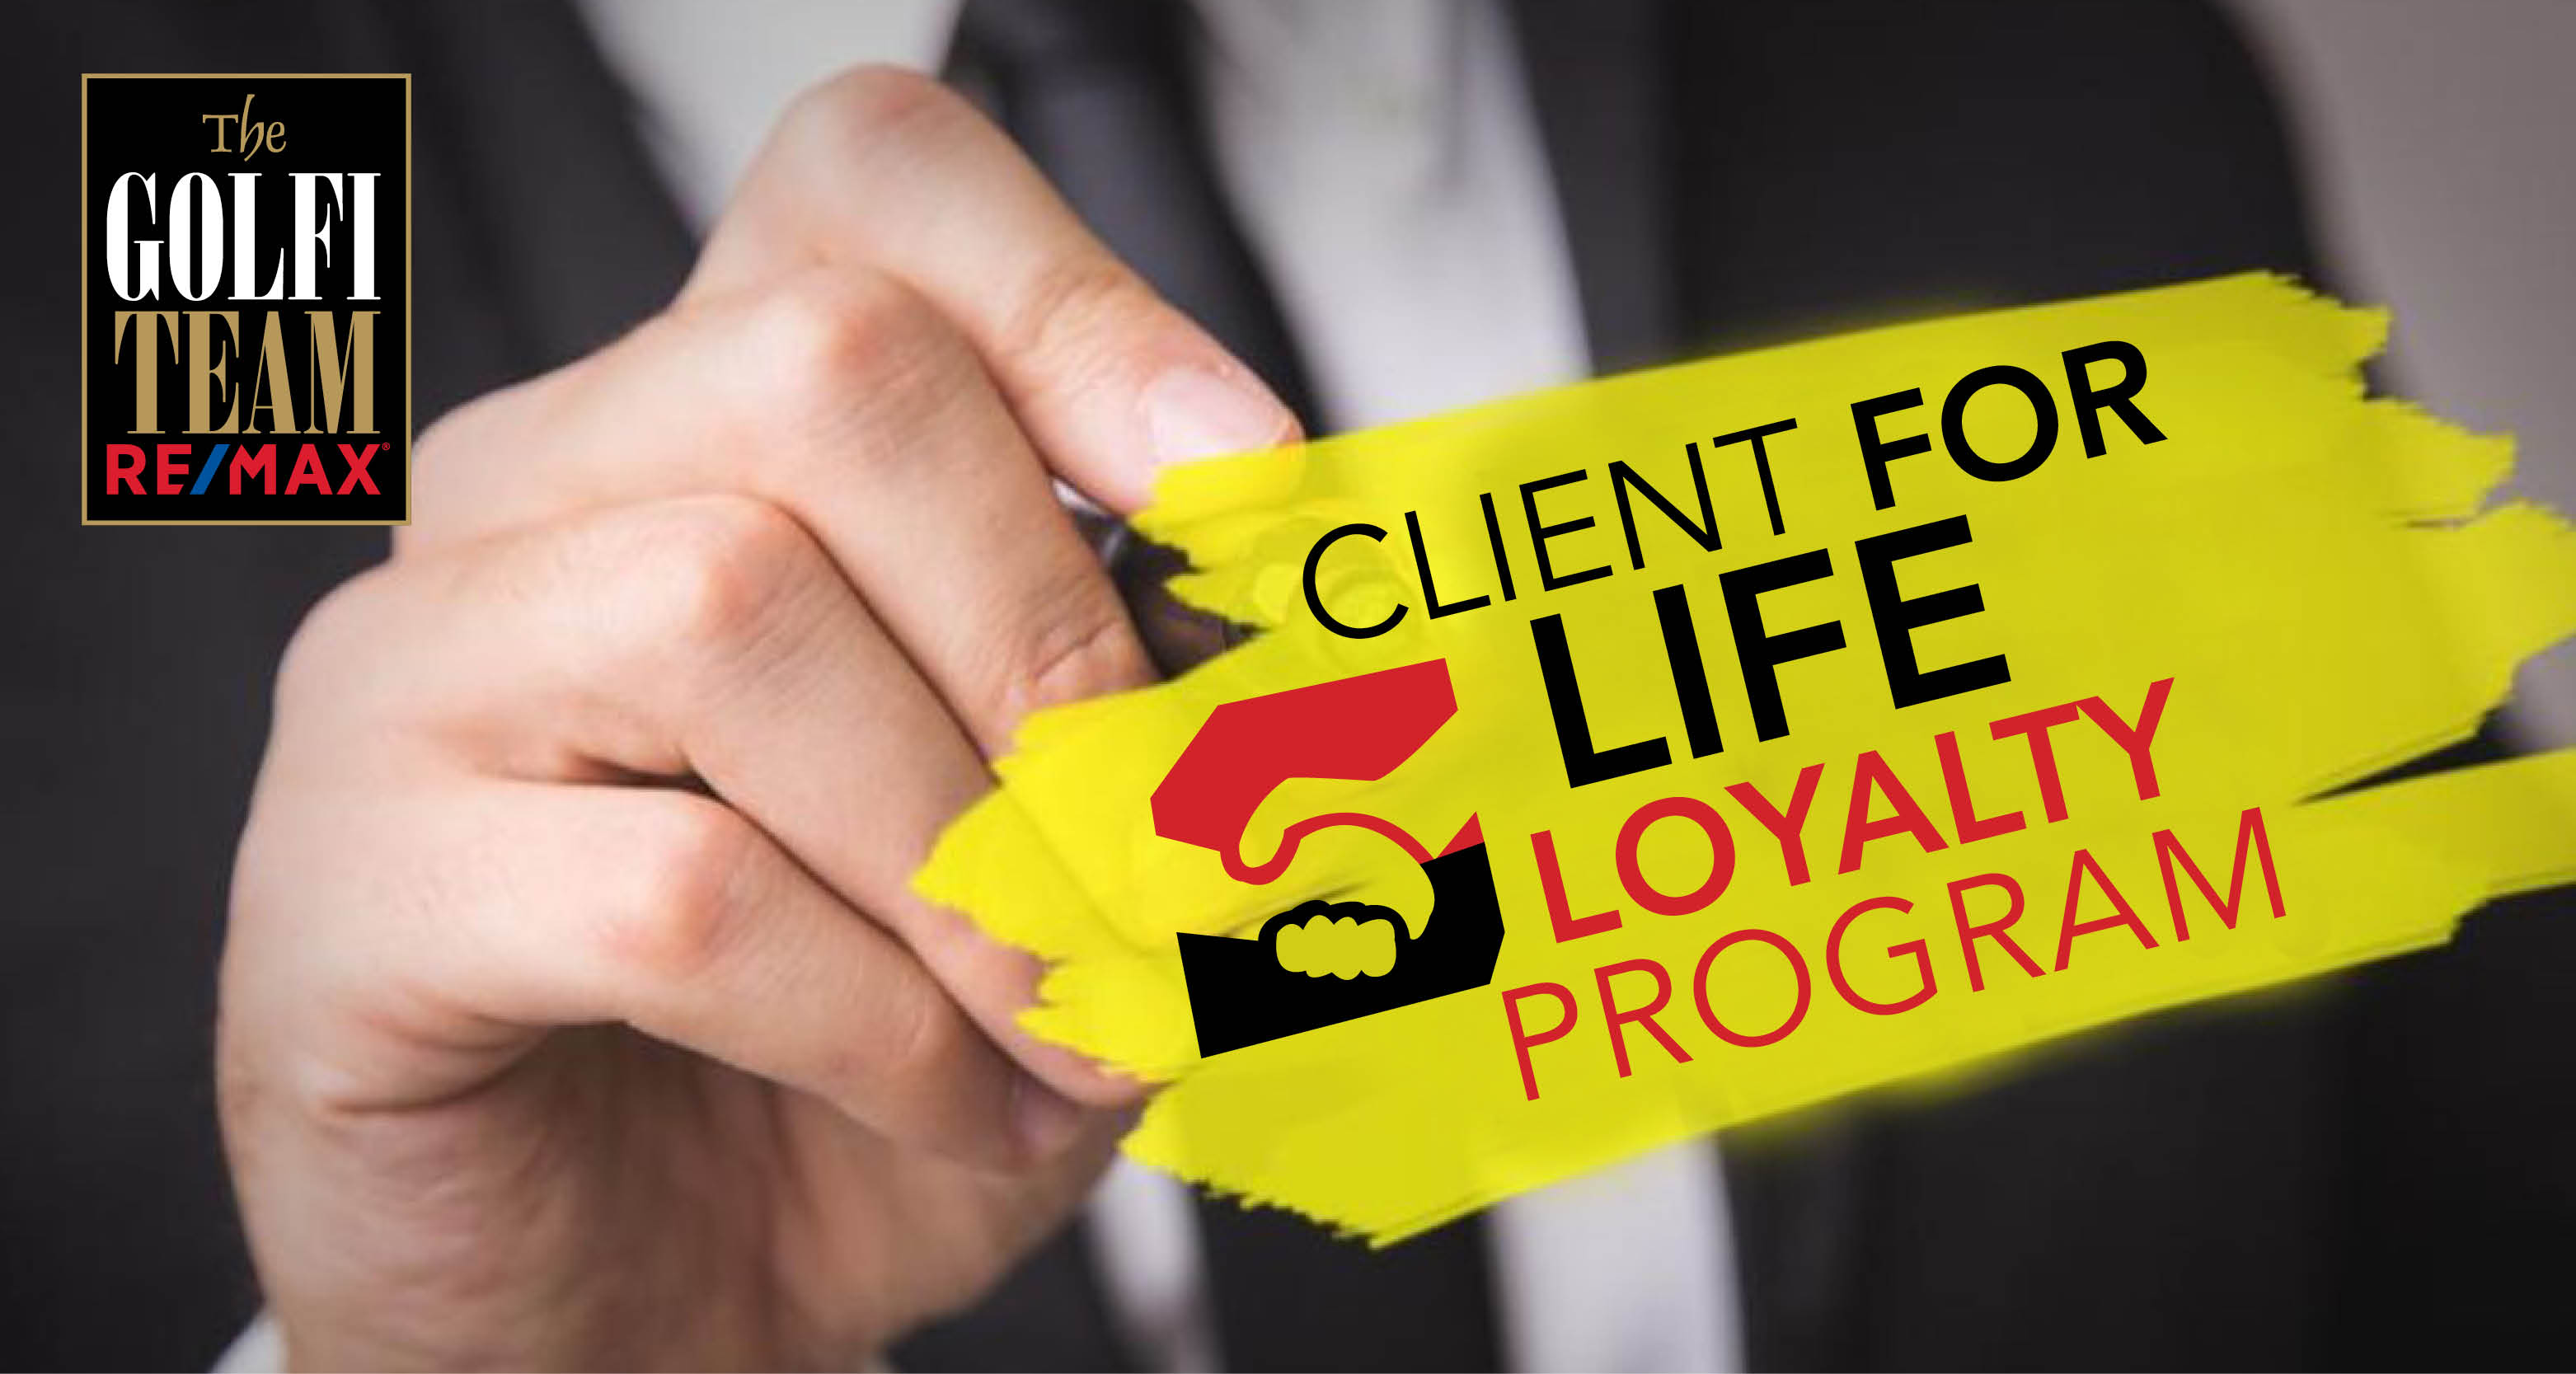 Client Life Loyalty Program from the best real estate agents in Hamilton, Halton and Niagara Ontario